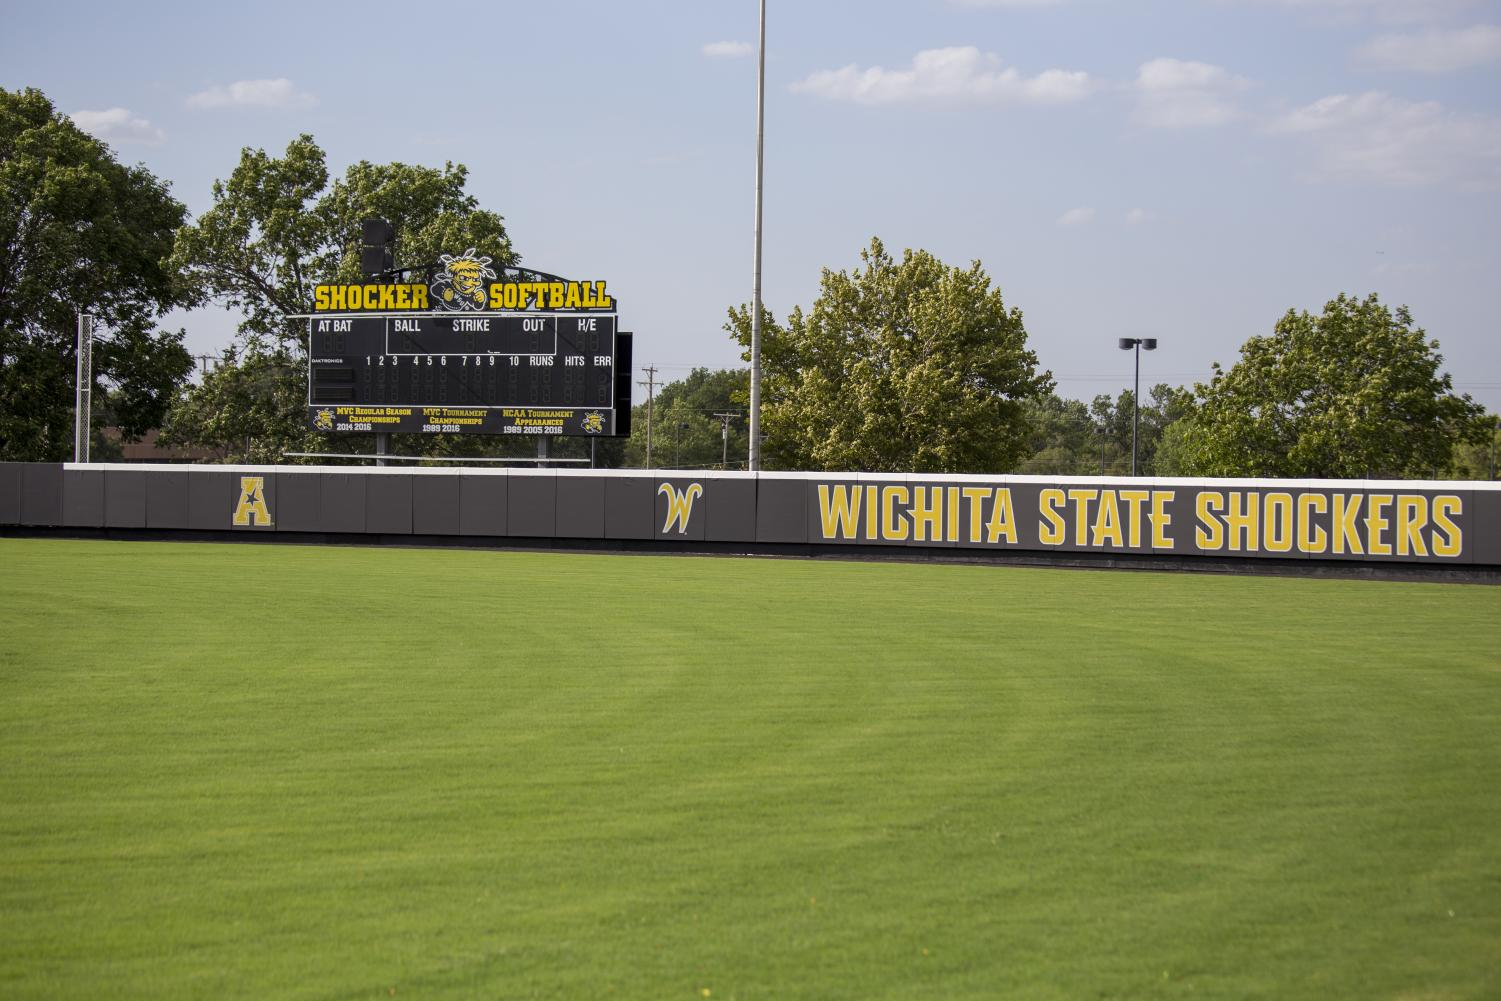 August 29, 2018: New fences are installed at Wilkins Stadium. The new fence features safety padding that is said to lessen the potential for injury should a player collide with the fence.